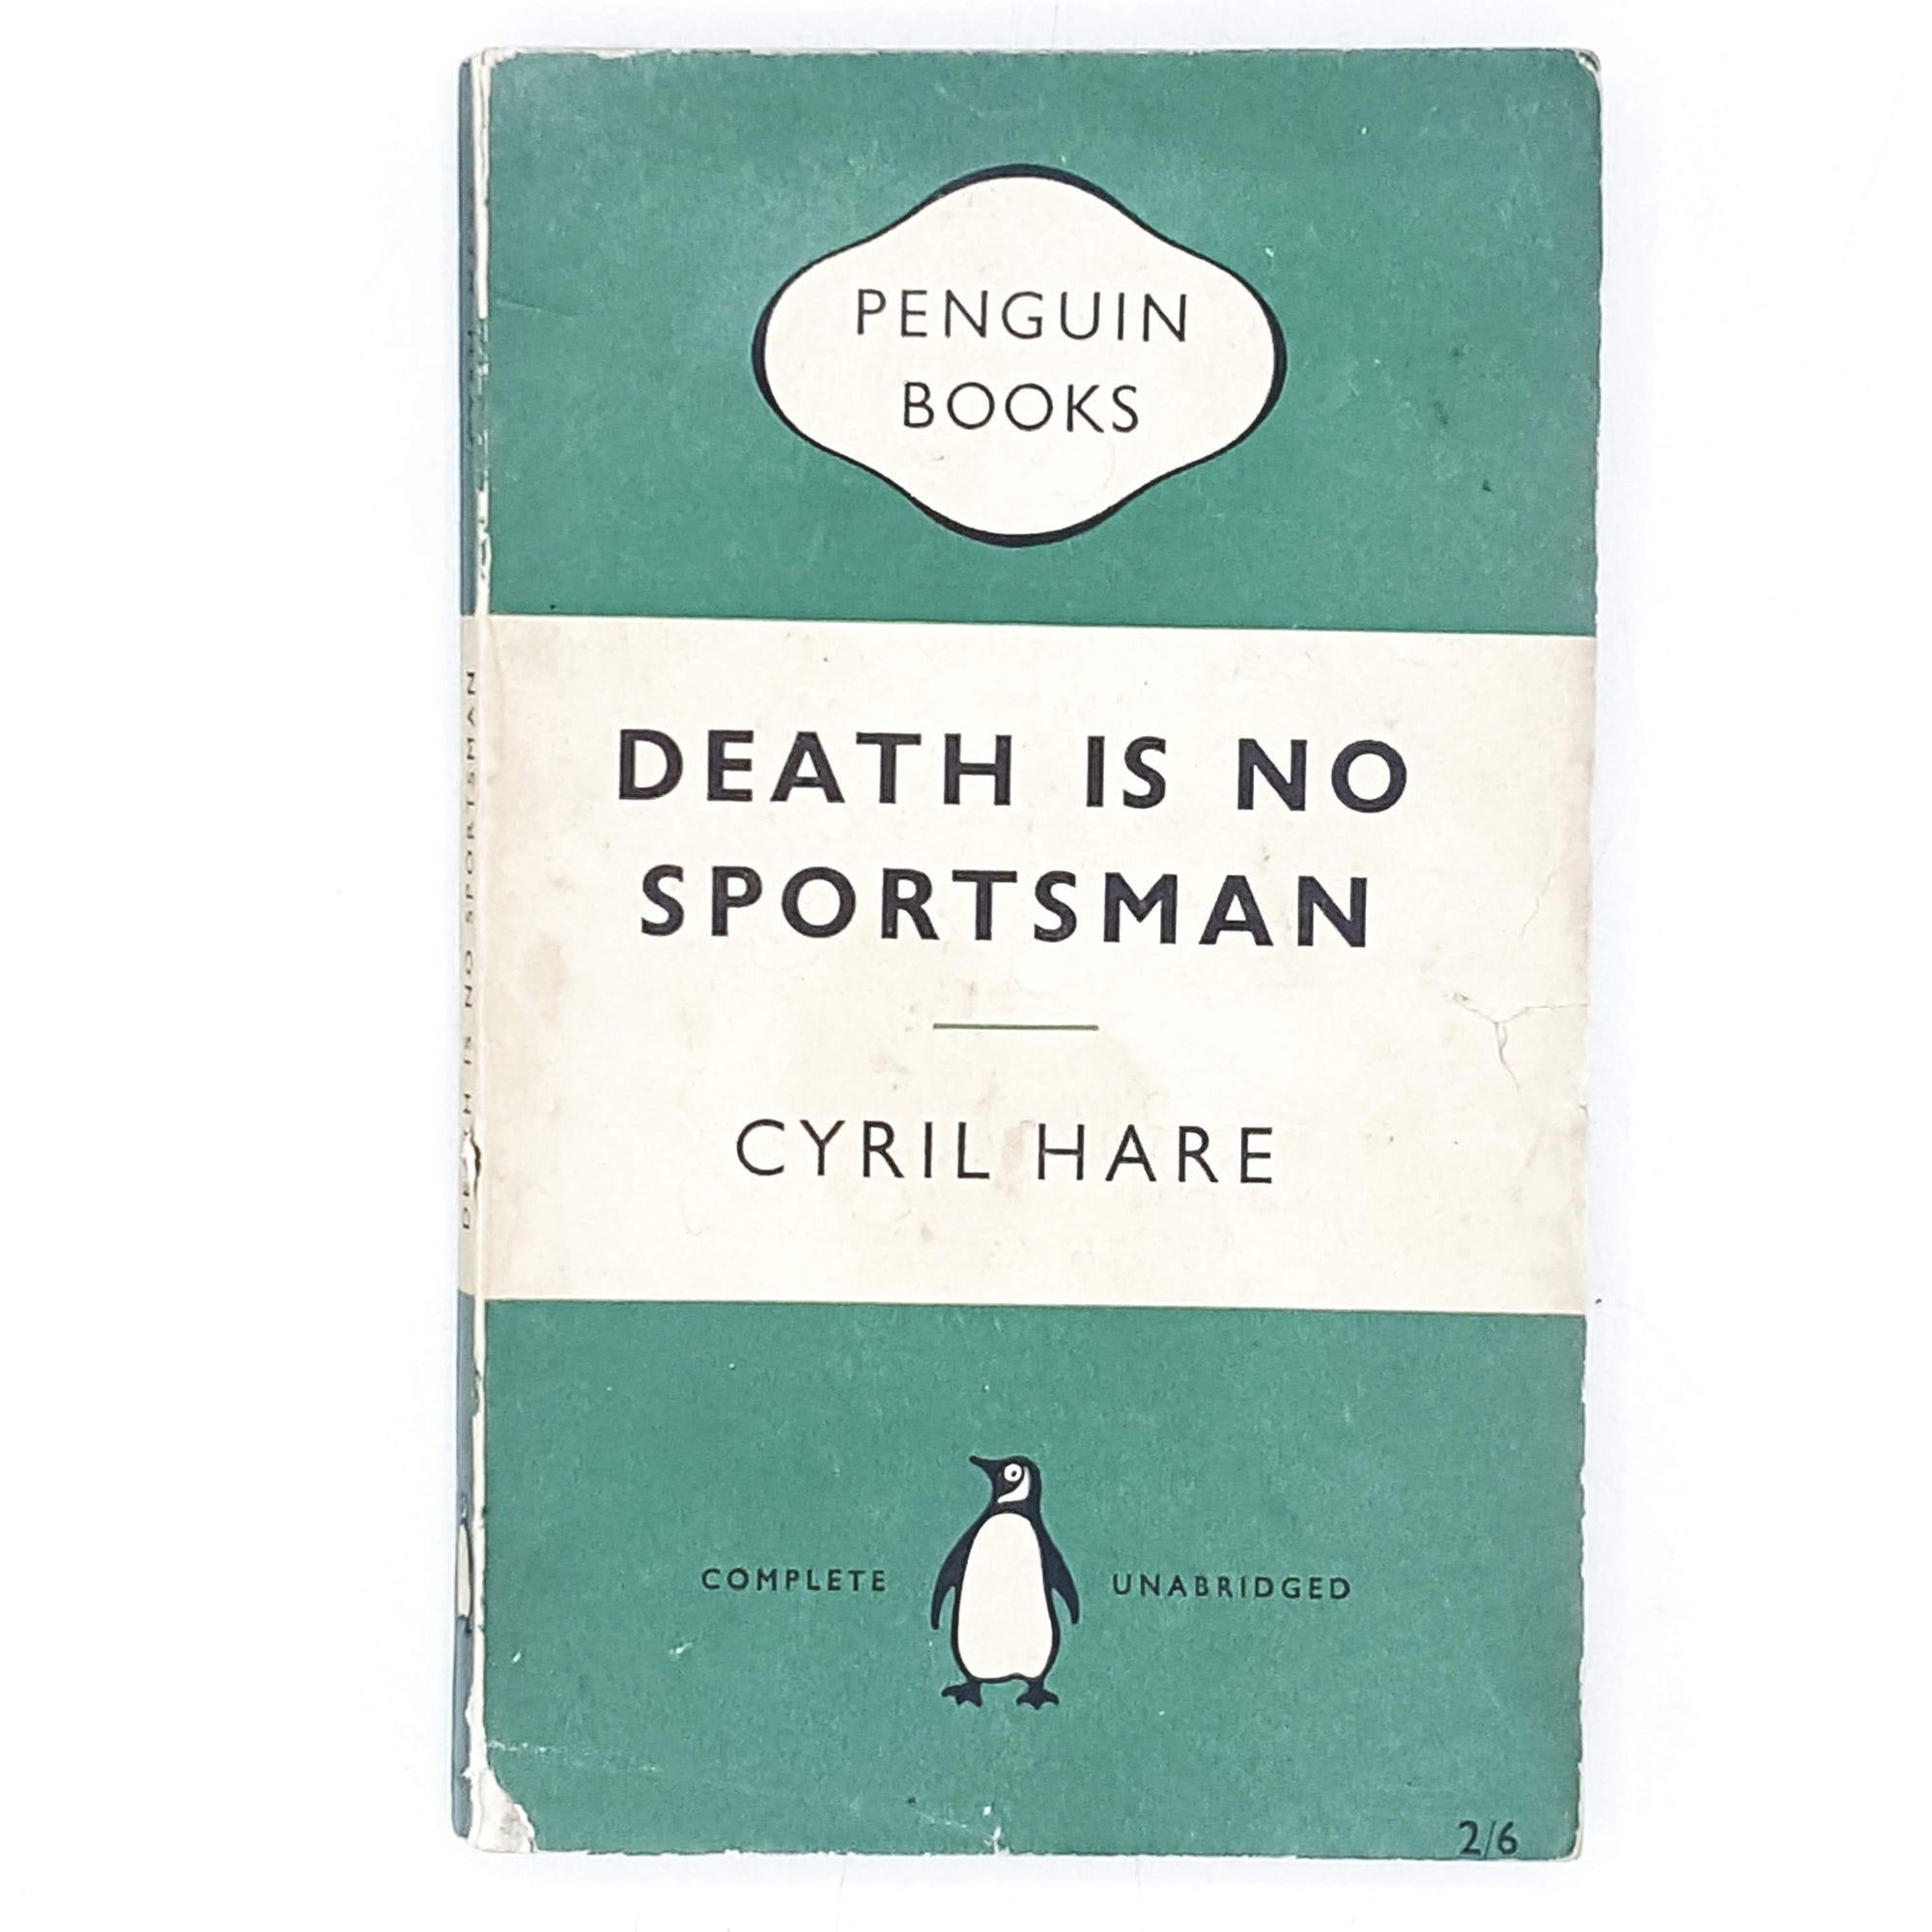 First Edition Penguin Death Is No Sportsman by Cyril Hare 1955